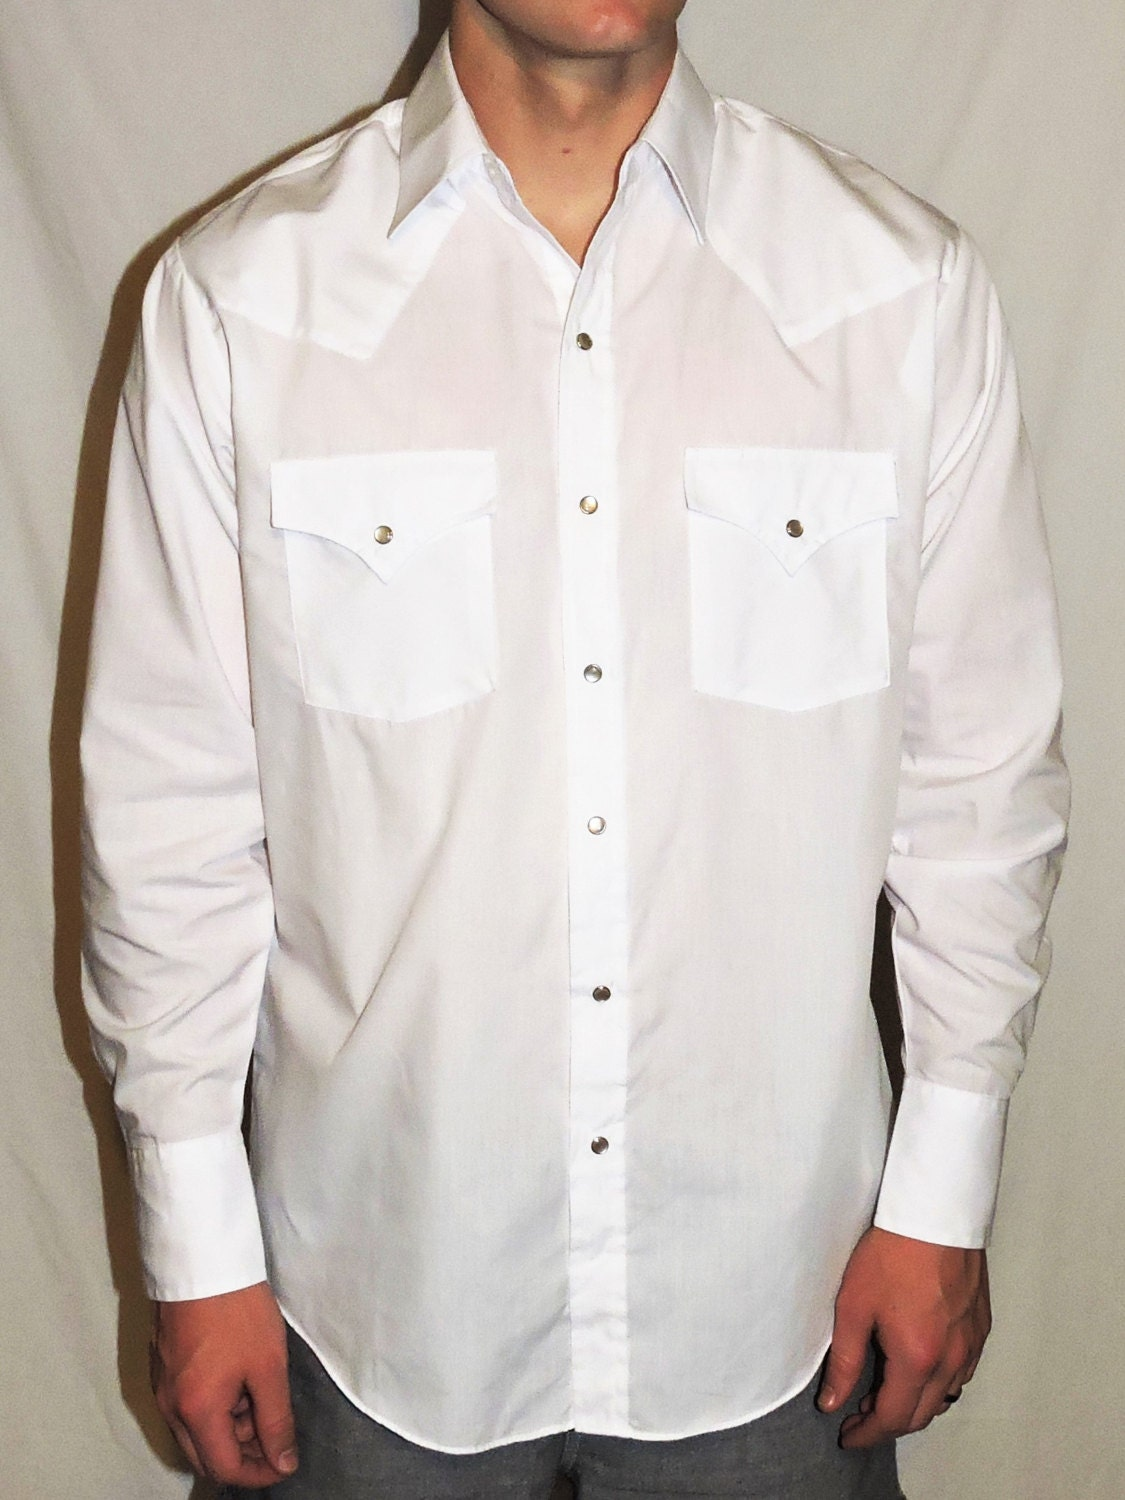 vintage plains western wear mens retro white sleeve